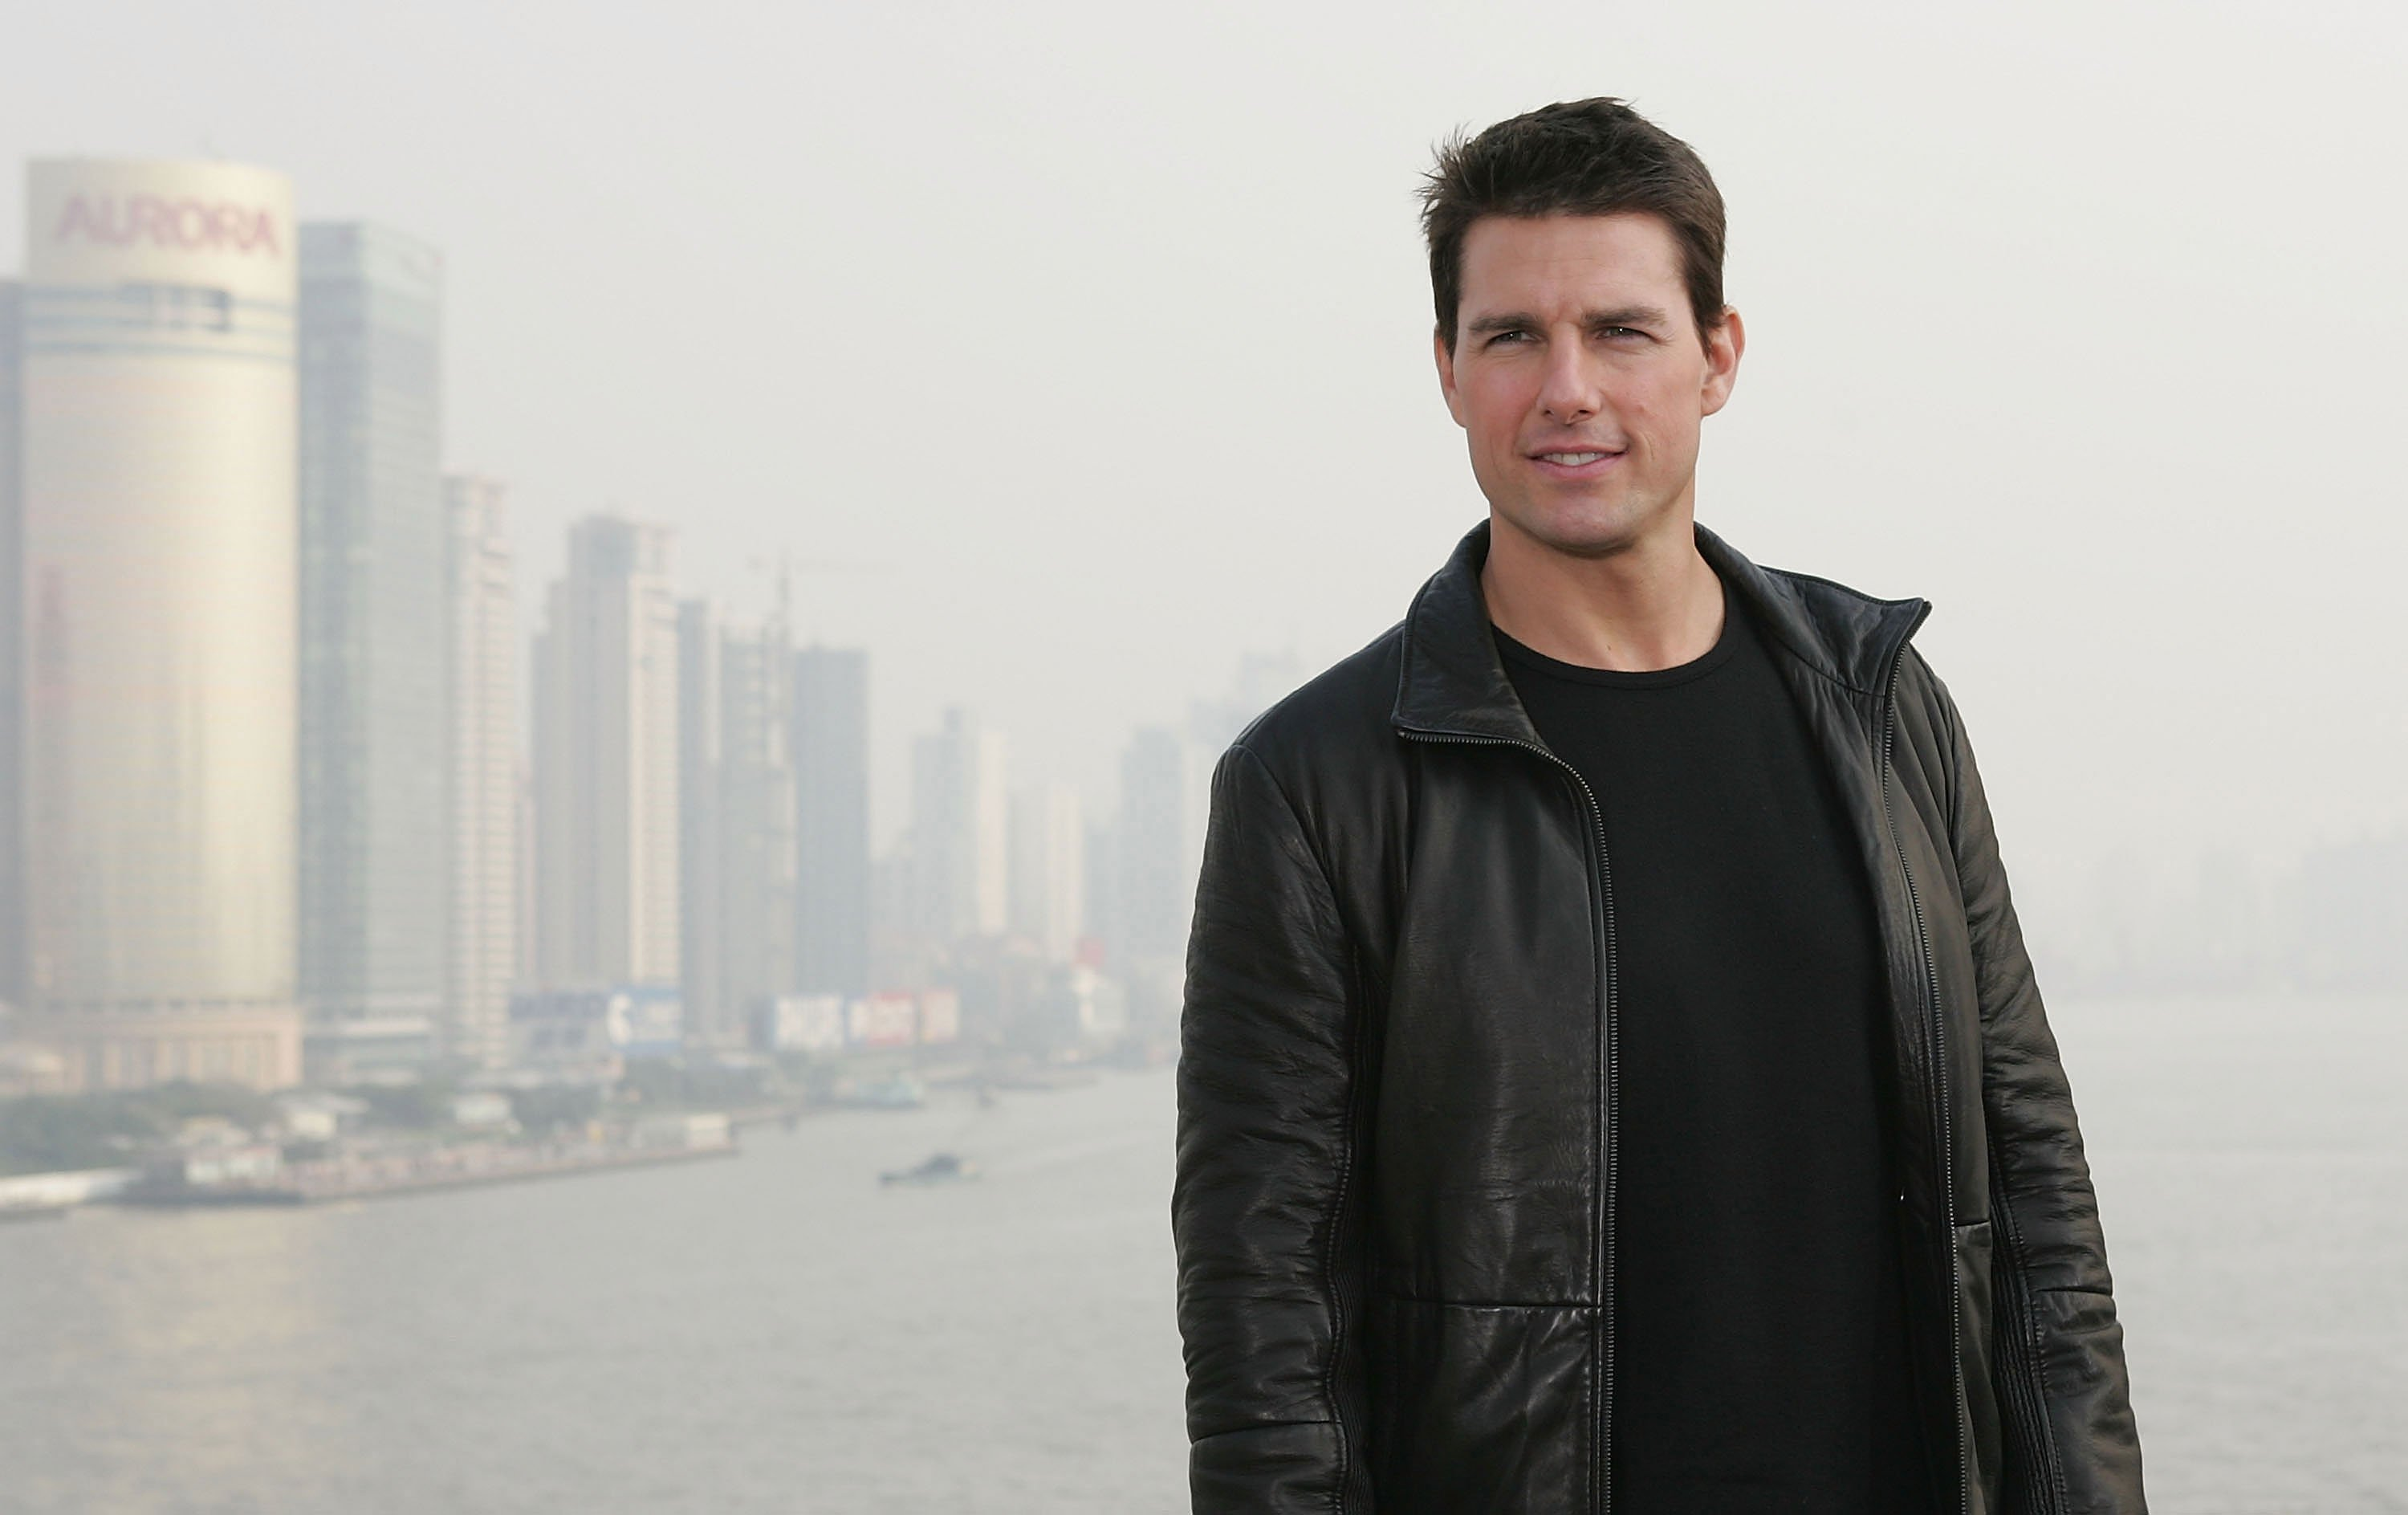 """Tom Cruise promoting """"Mission Impossible III"""" atop Shanghai's historic Bund 18 building on November 30, 2005 